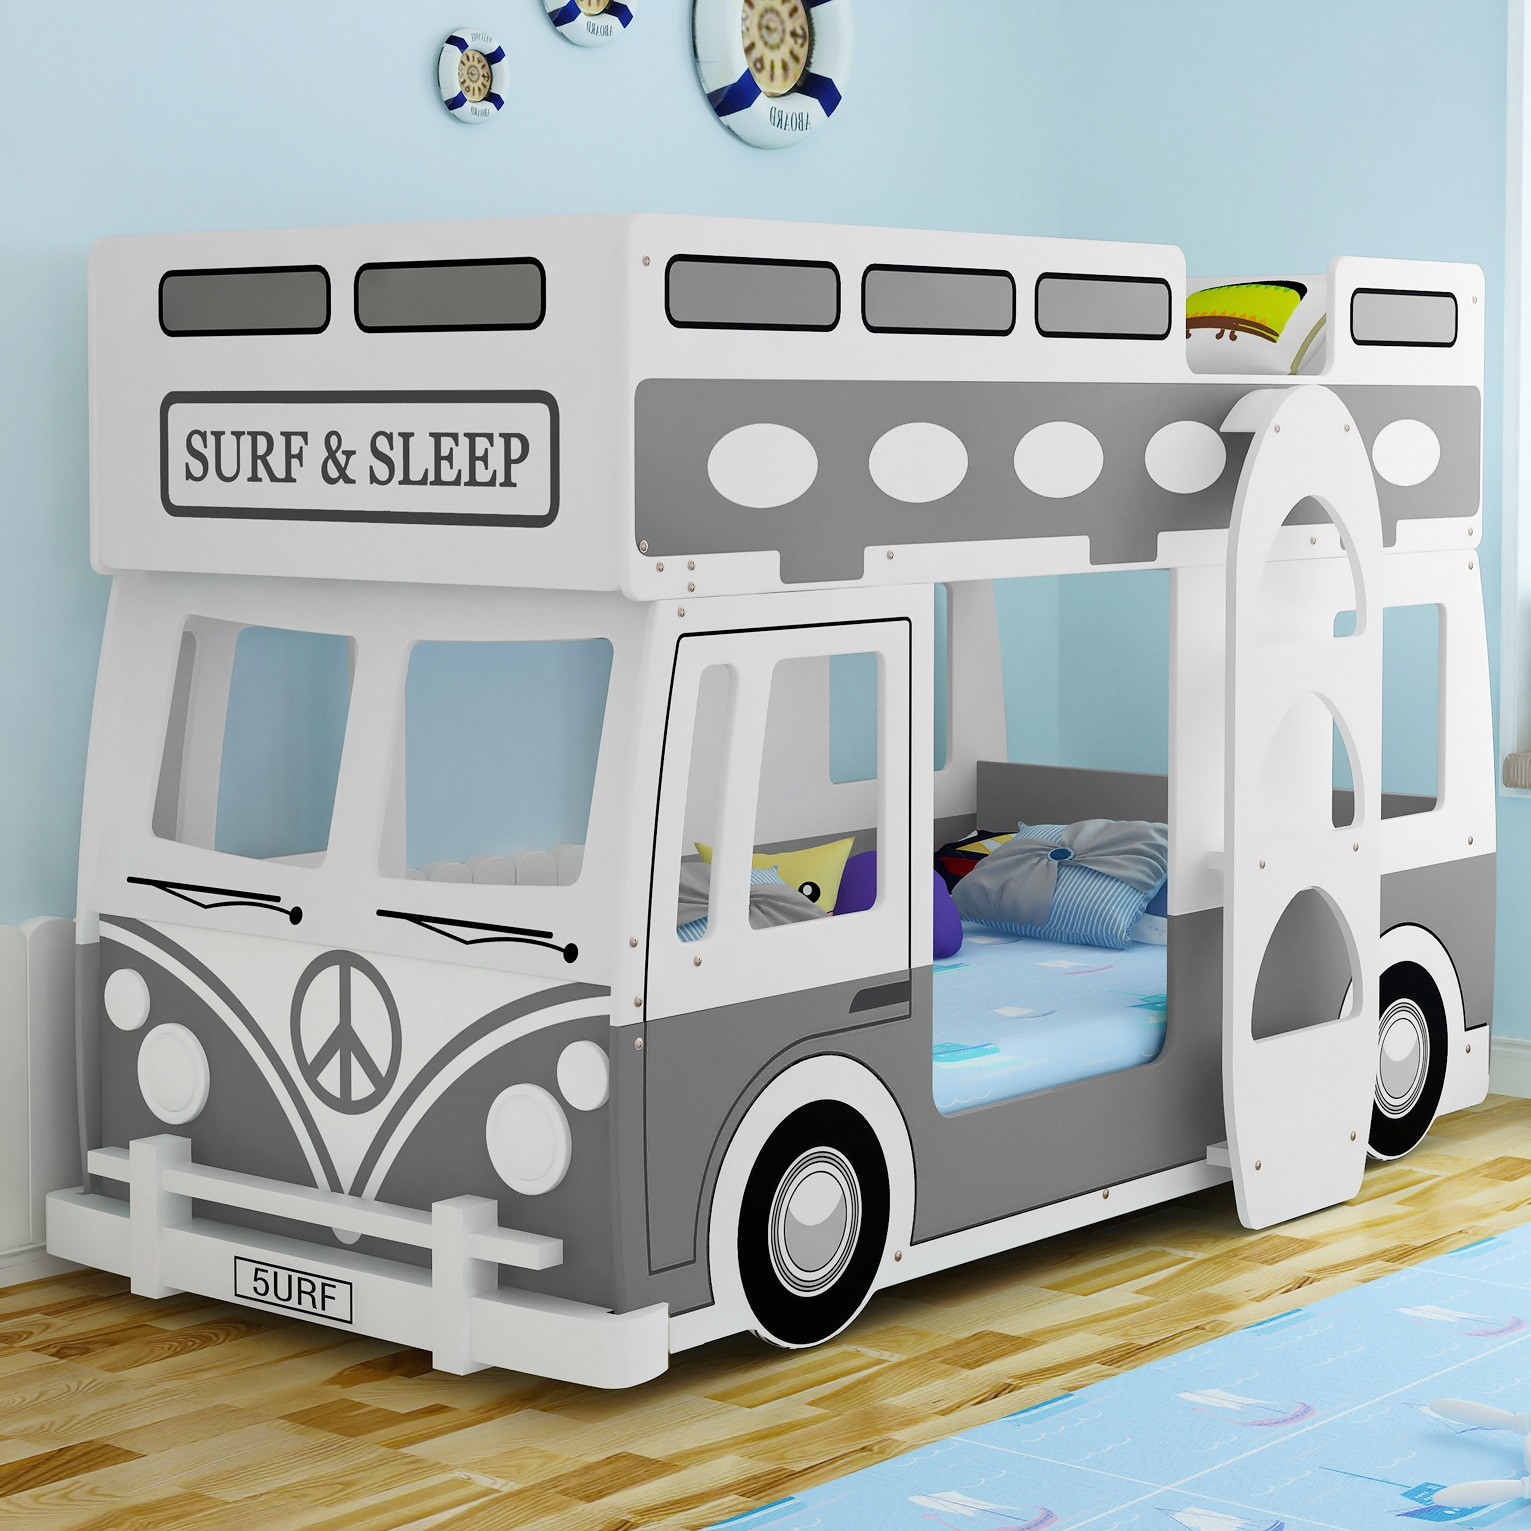 Surf & Sleep Bunk Bed, Single